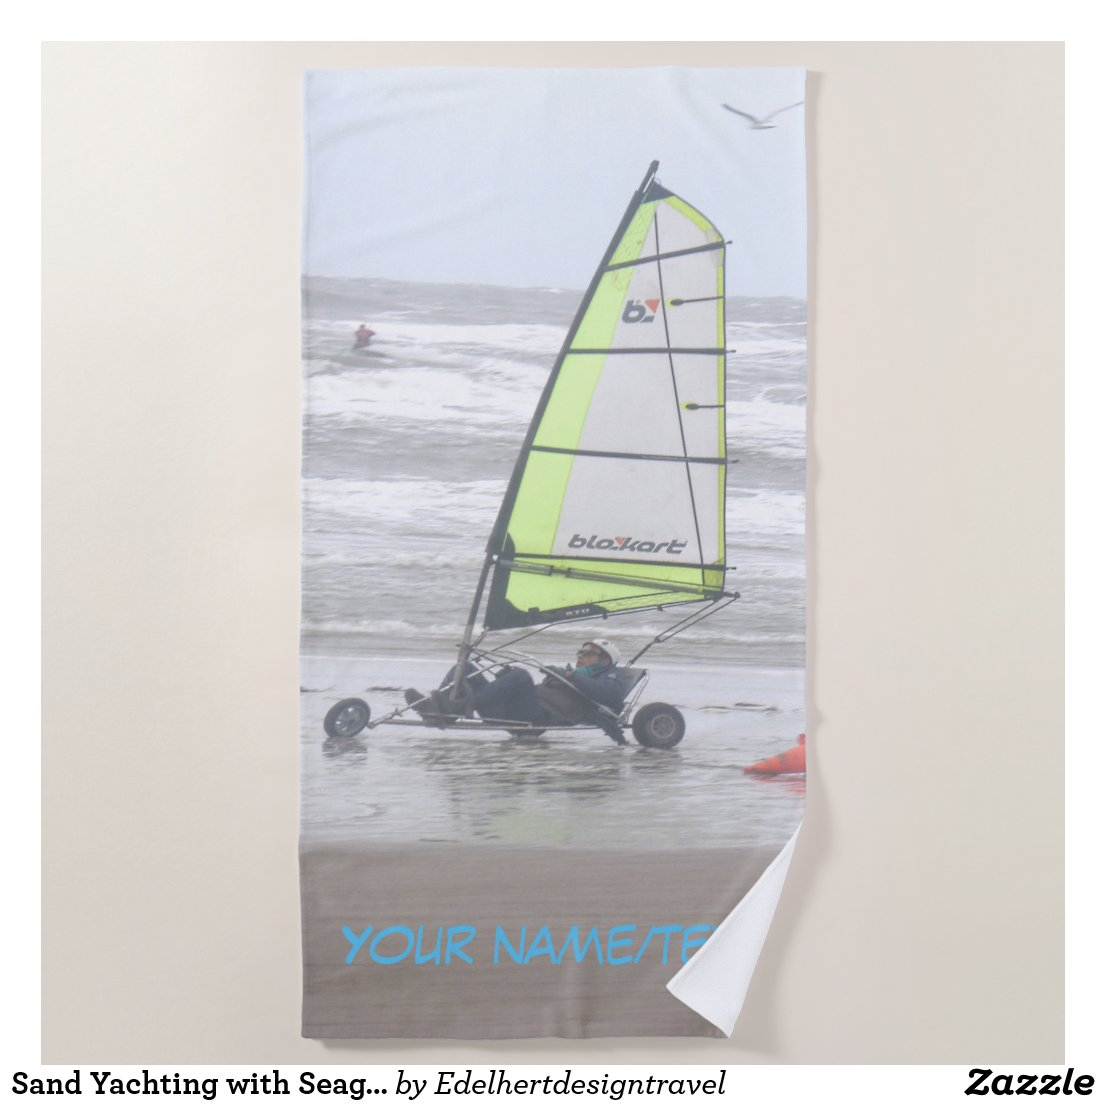 Sand Yachting with Seagul Cust. Beach Towel